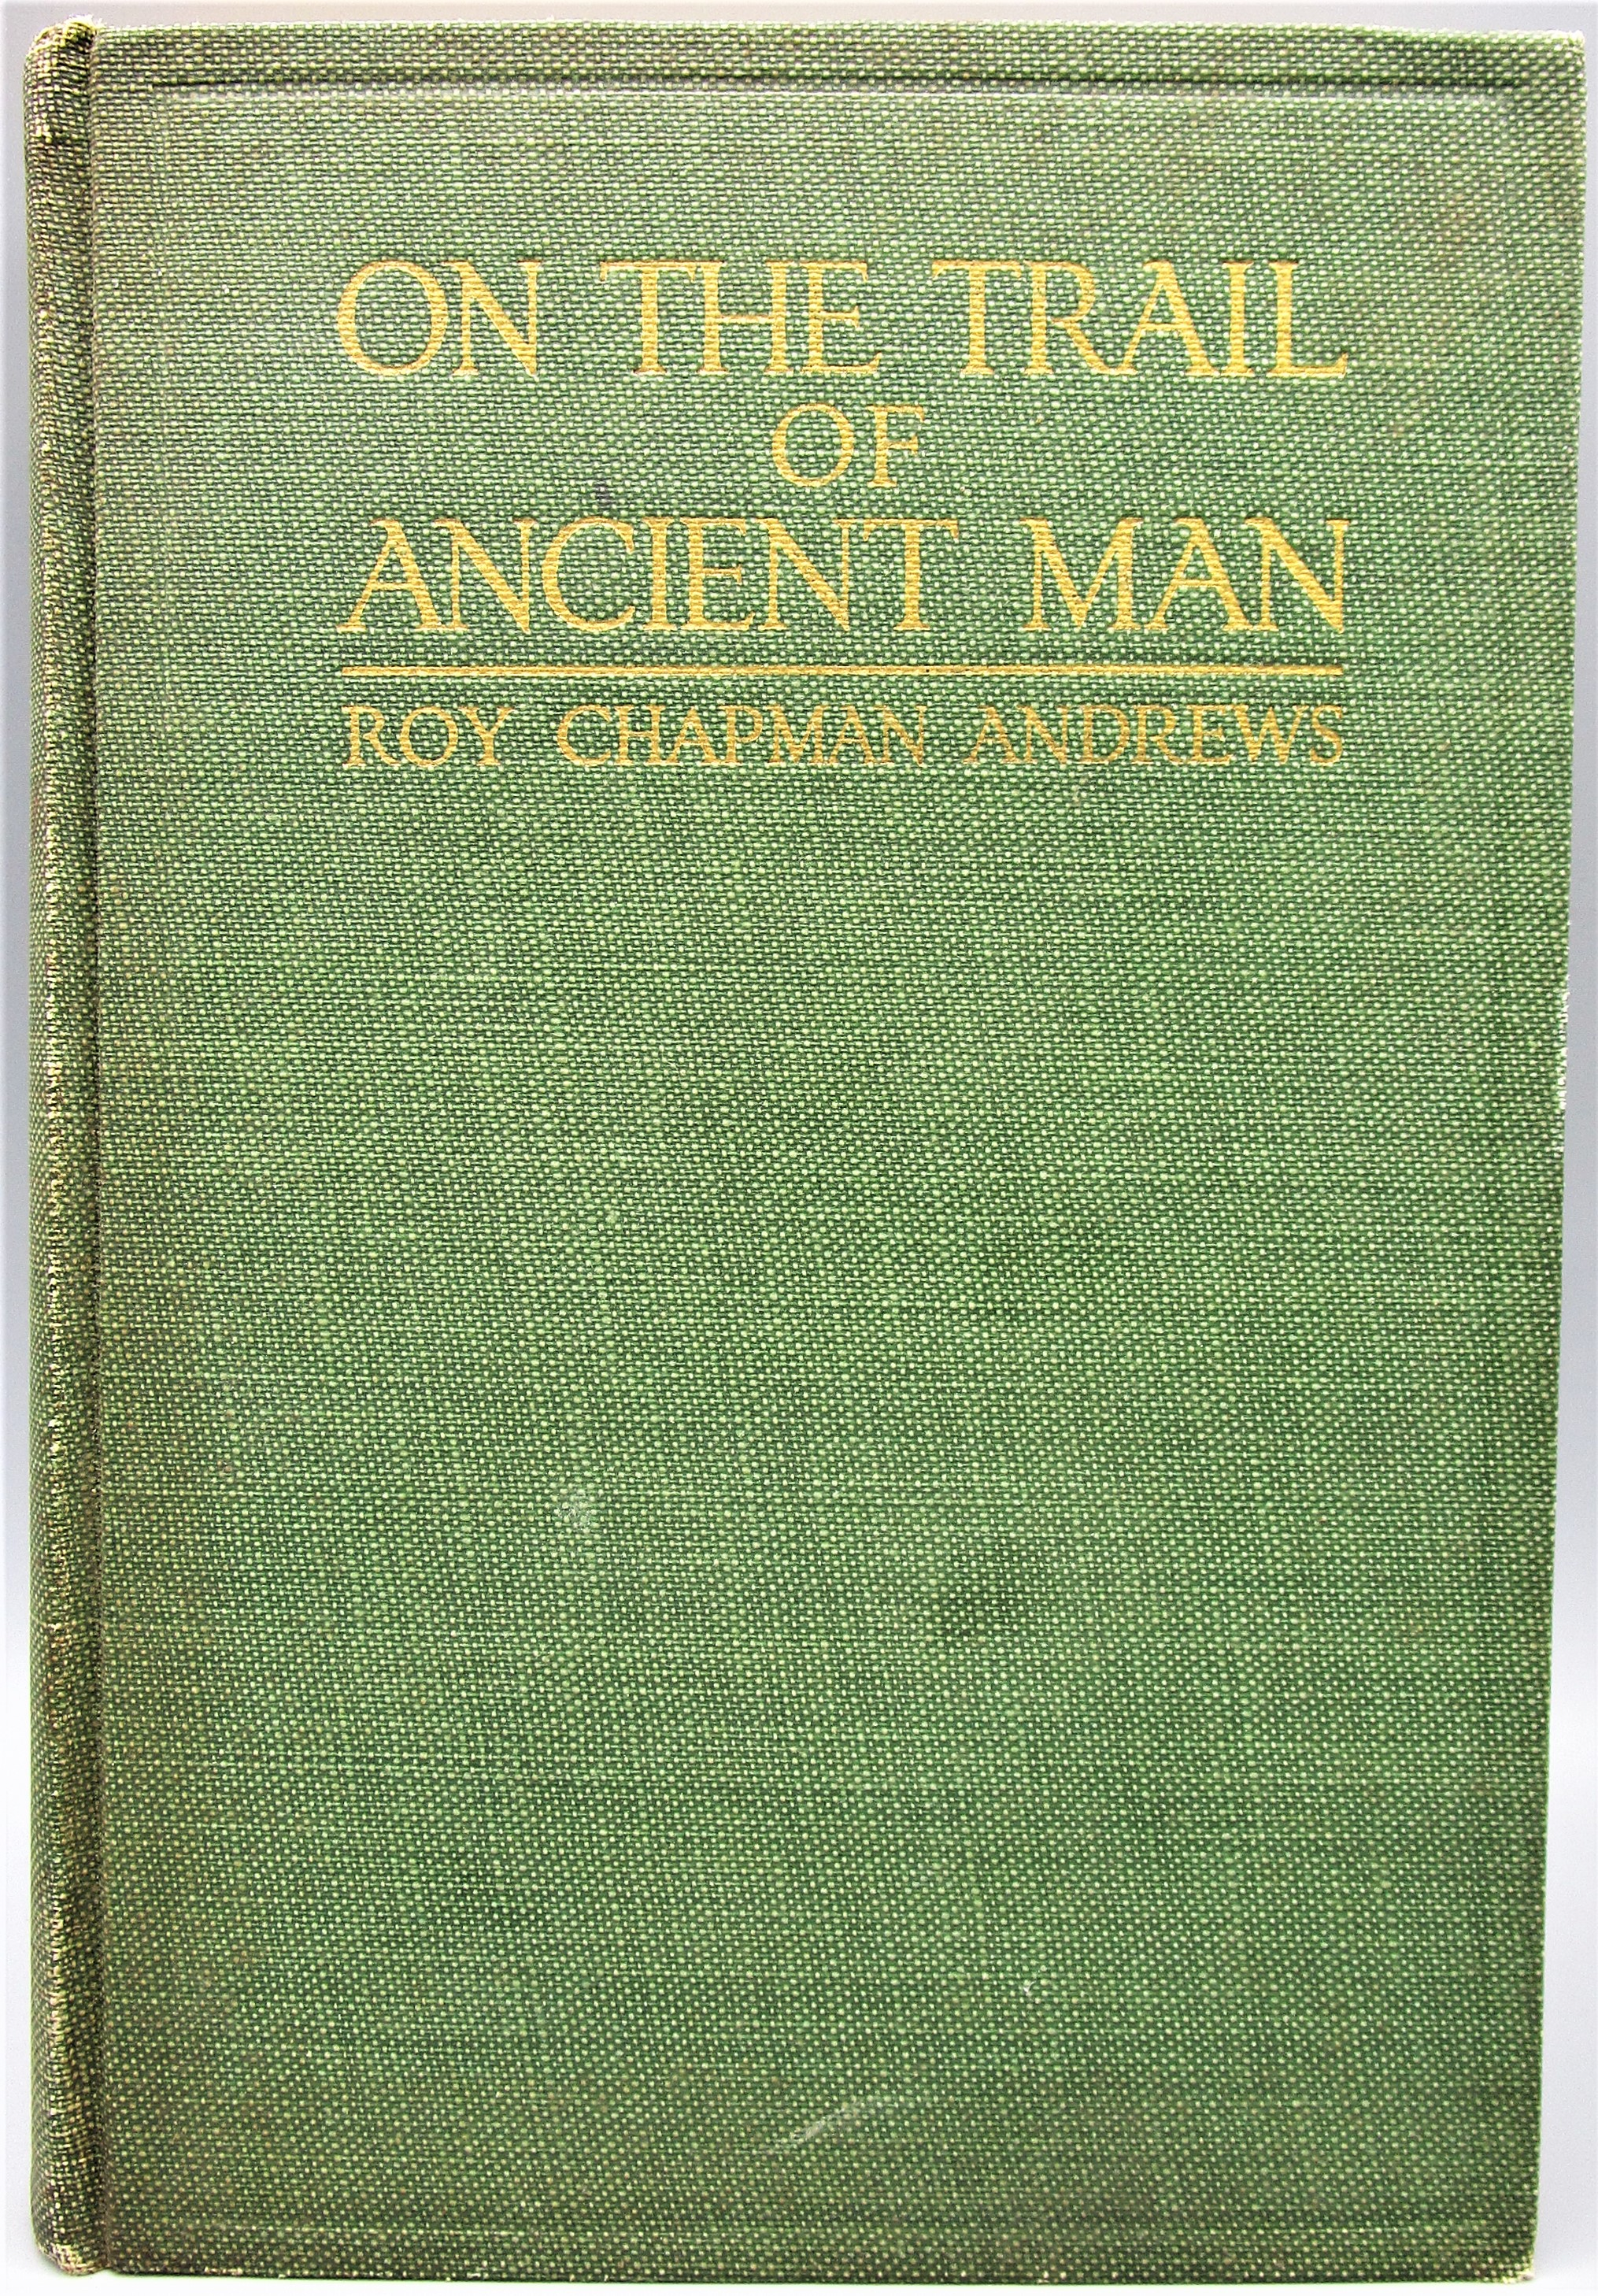 ON THE TRAIL OF ANCIENT MAN, by Roy Chapman Andrews - 1926 [Signed 1st Ed]